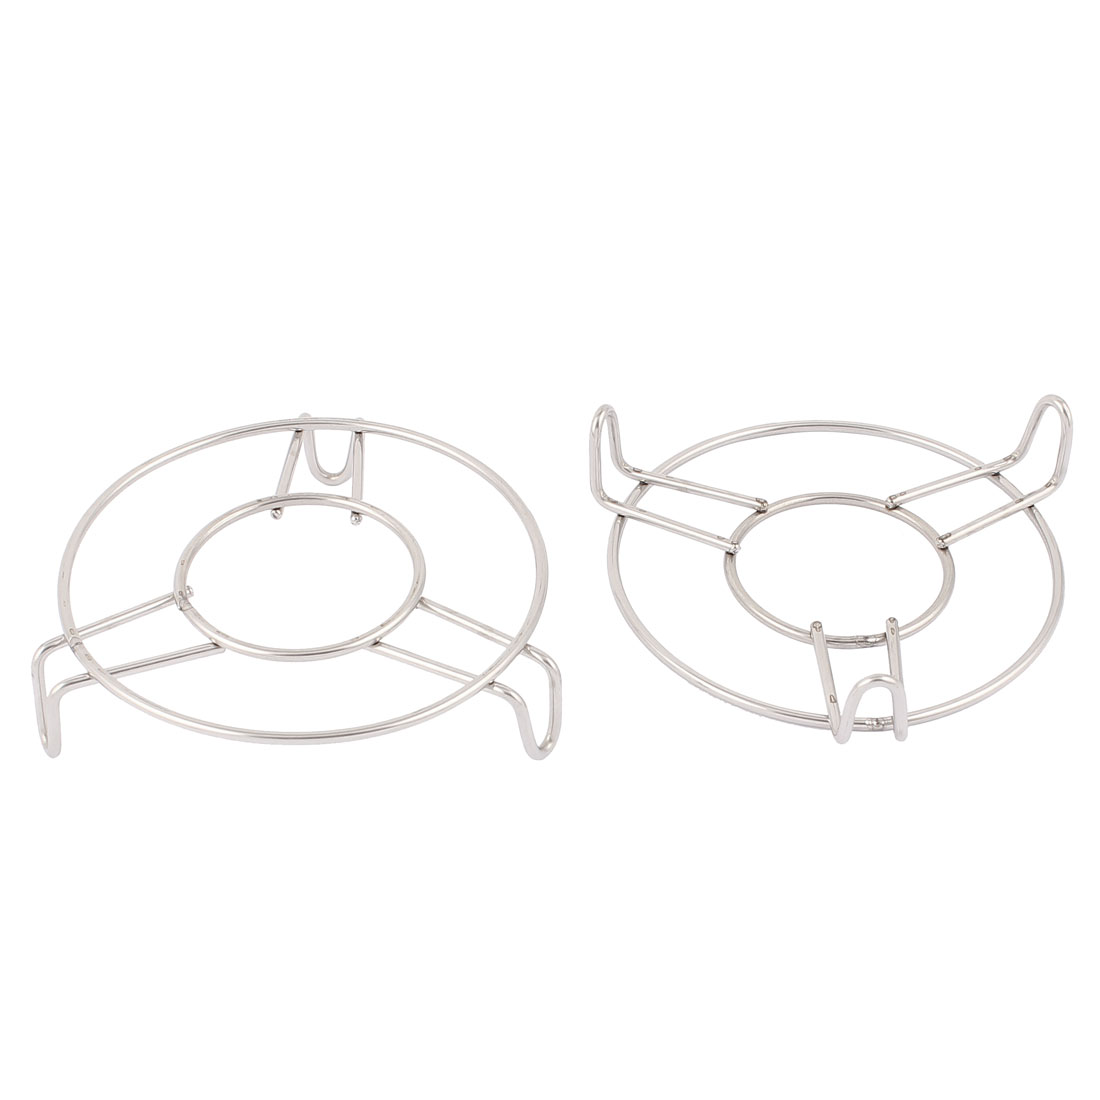 "Kitchen Metal Round Food Cooking Steaming Rack Stand 4"" Dia Silver Tone 2pcs"